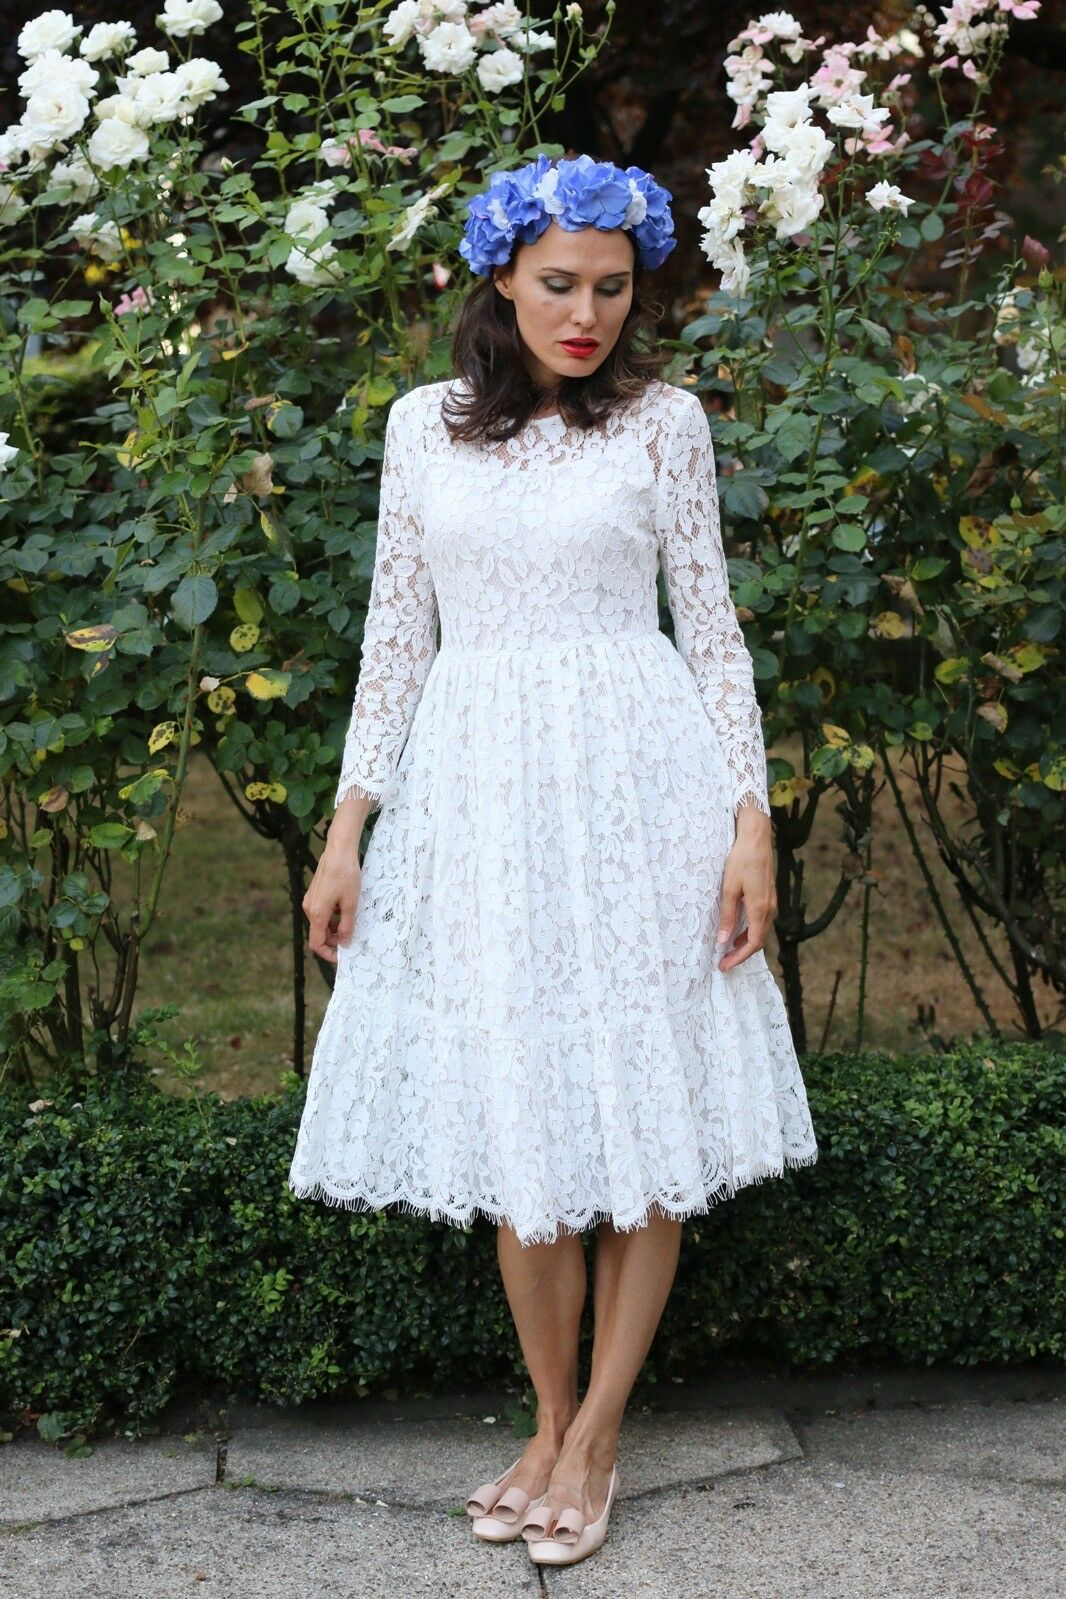 White Lace Designer Summer Spring Sheath Casual Womens Long Sleeve Dress S 8